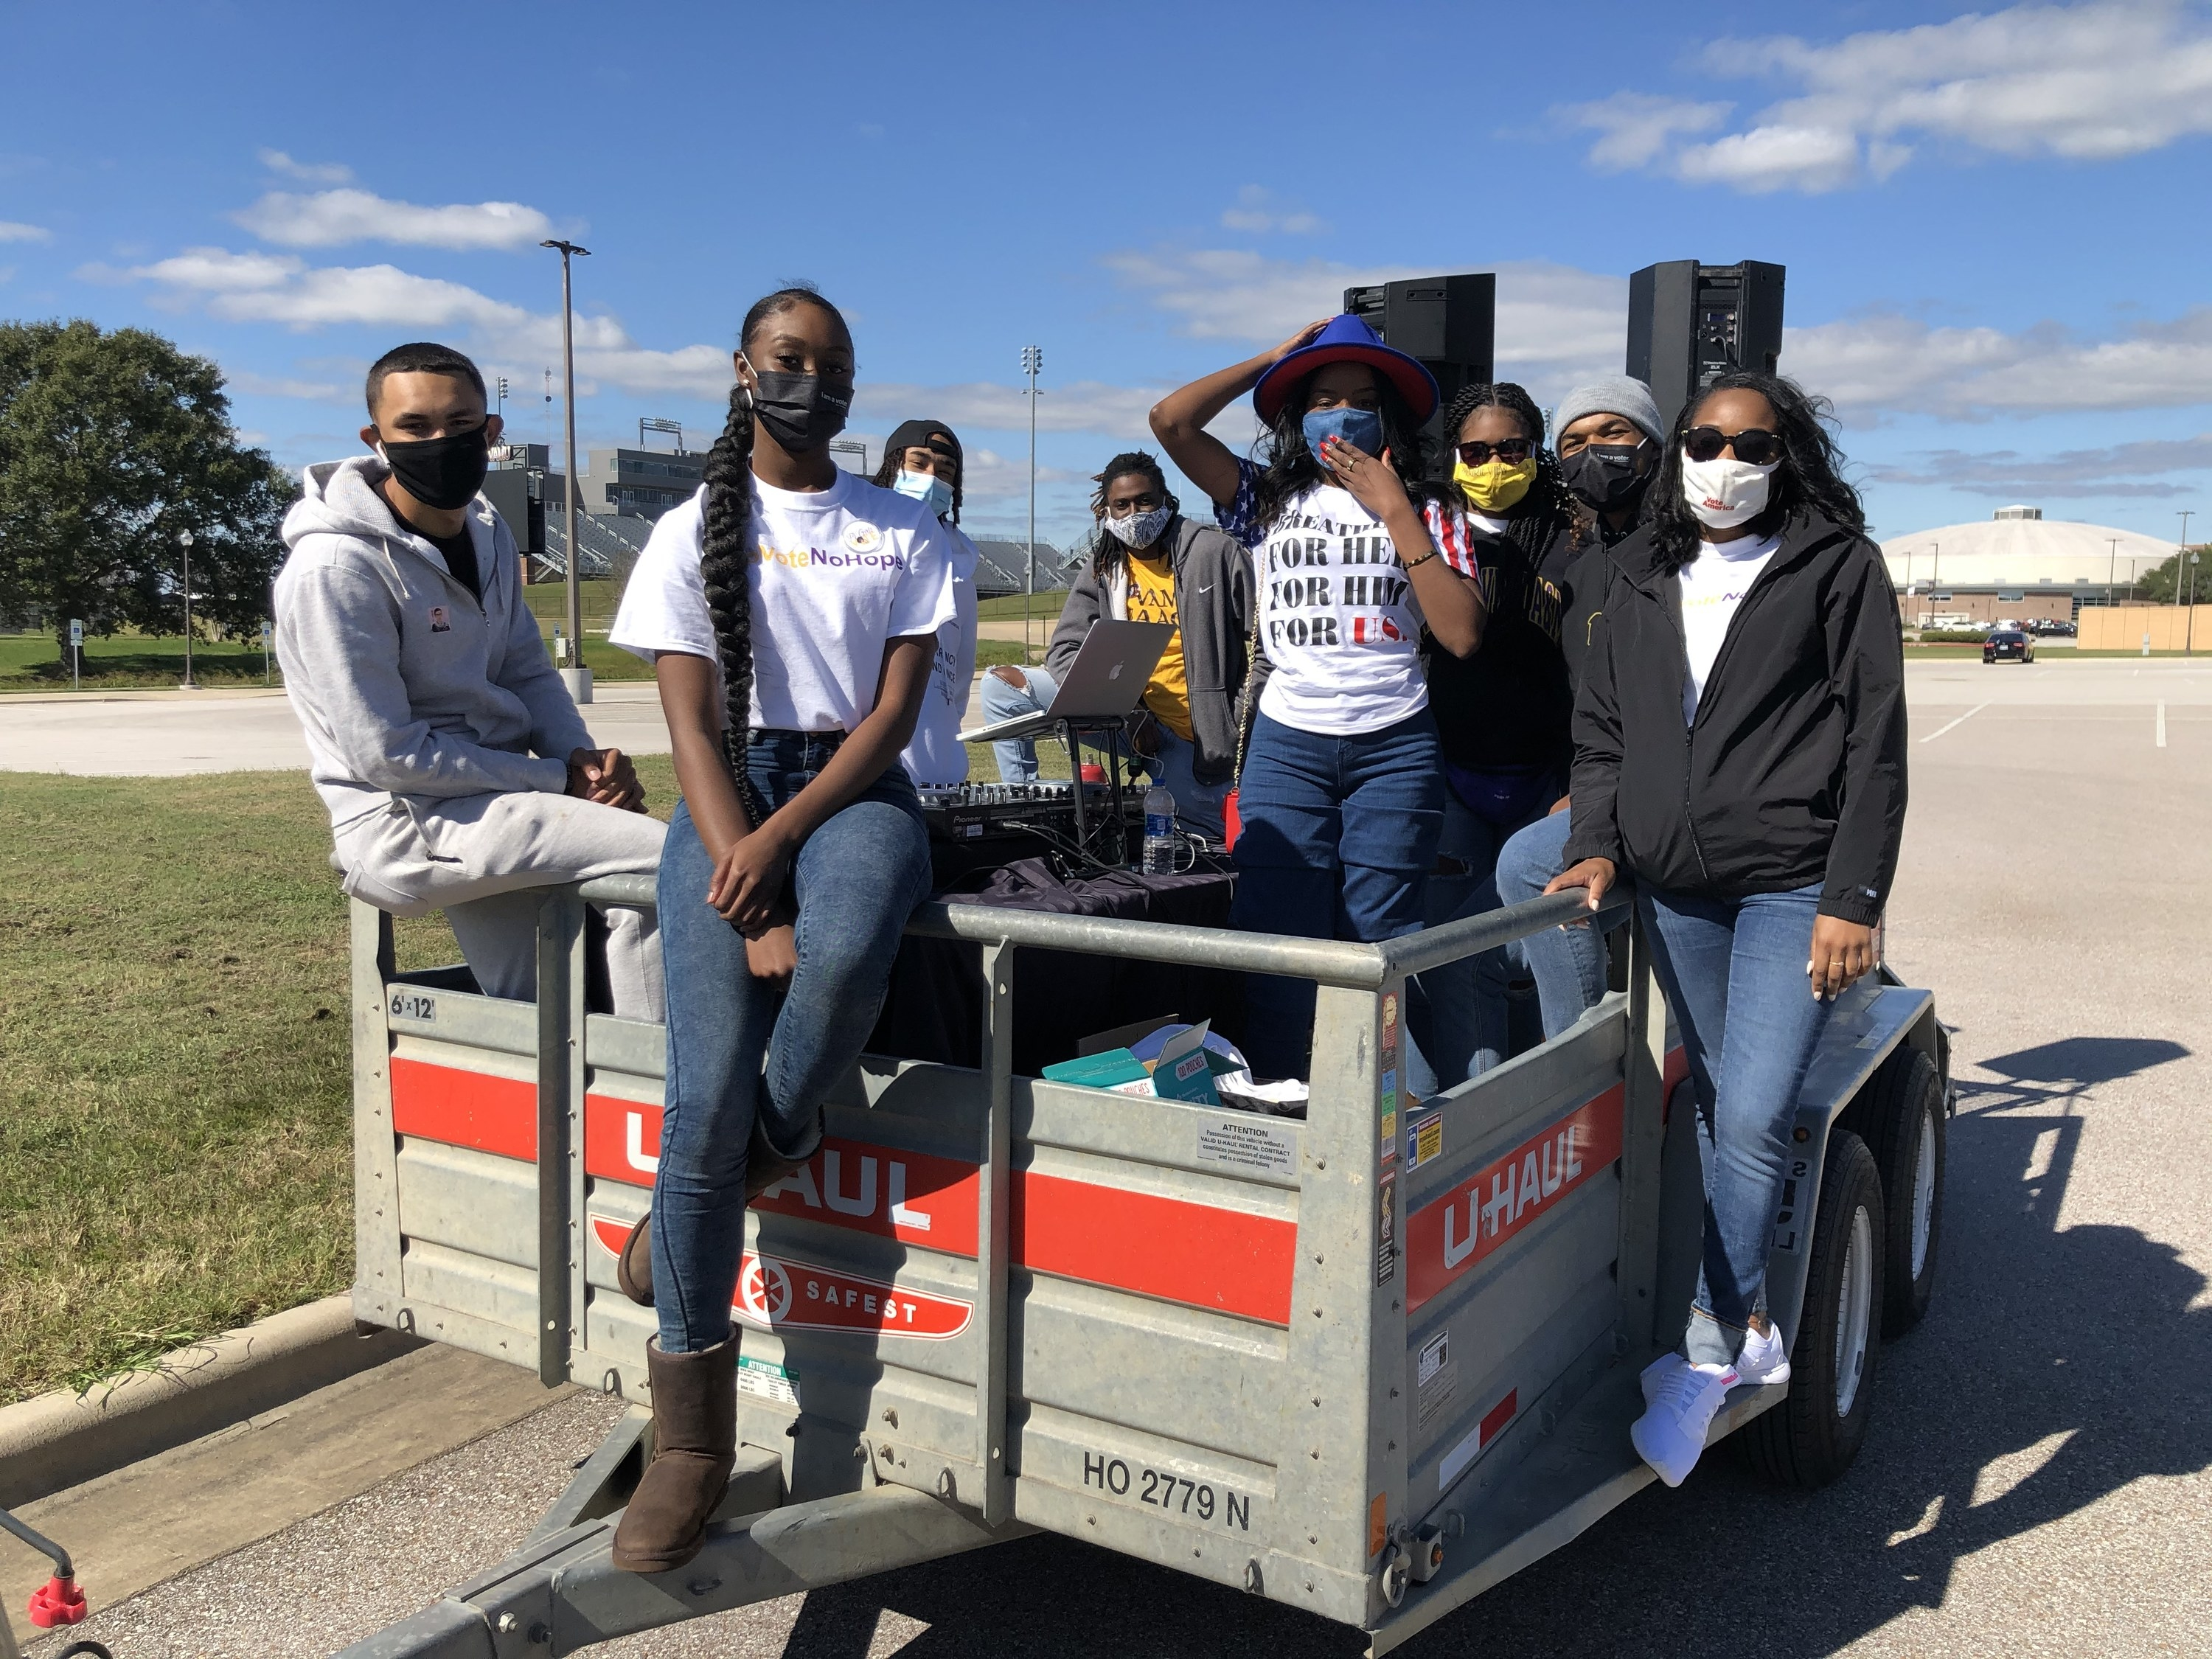 Students wearing masks stand in a U-Haul trailer